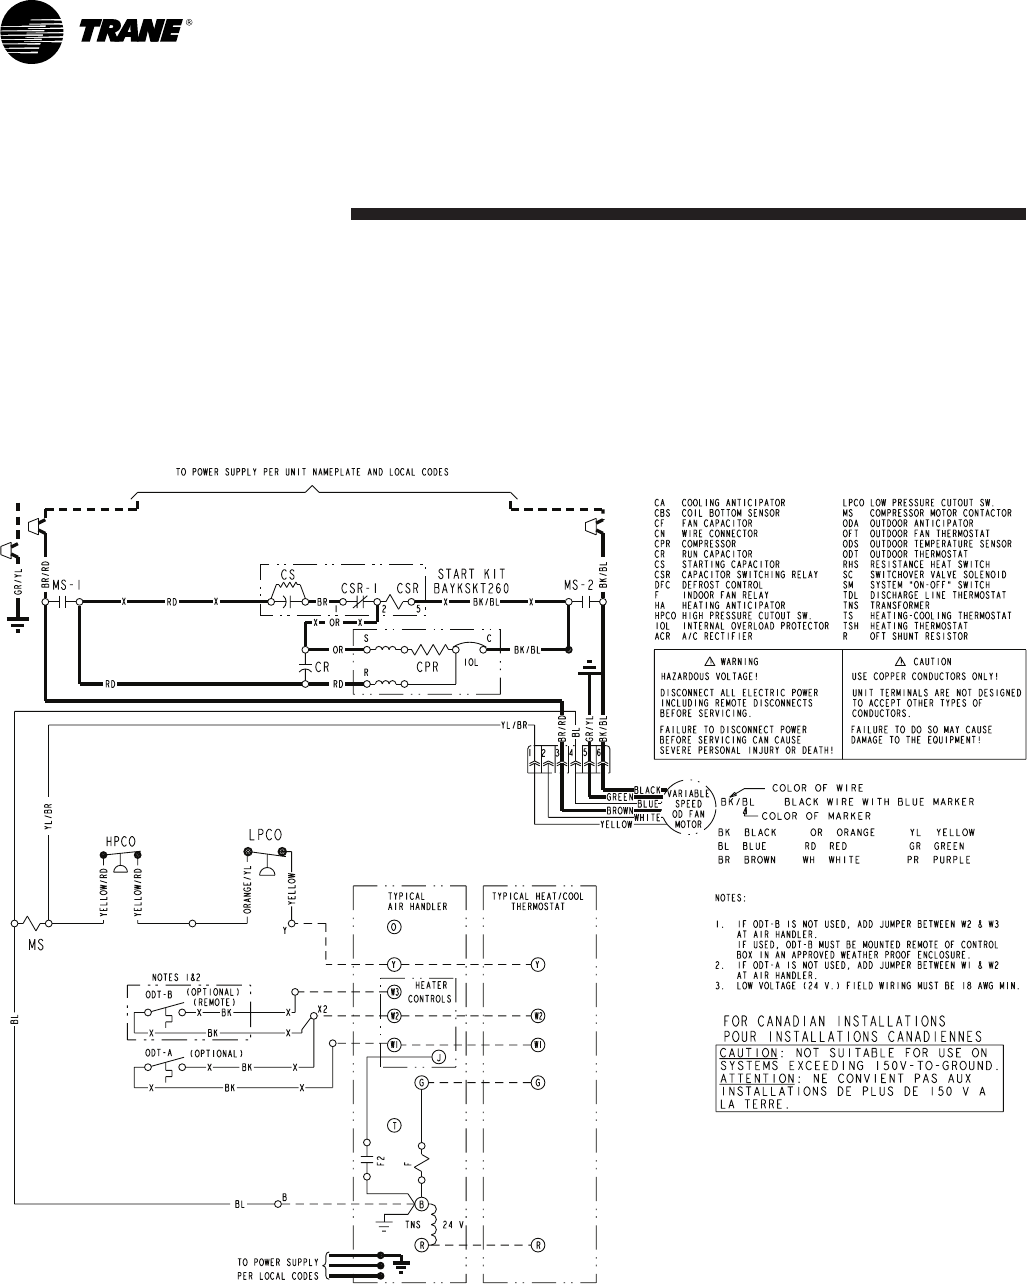 Trane Xr15 Wiring Diagram Xr13 Xv95 Xl80 Xr On